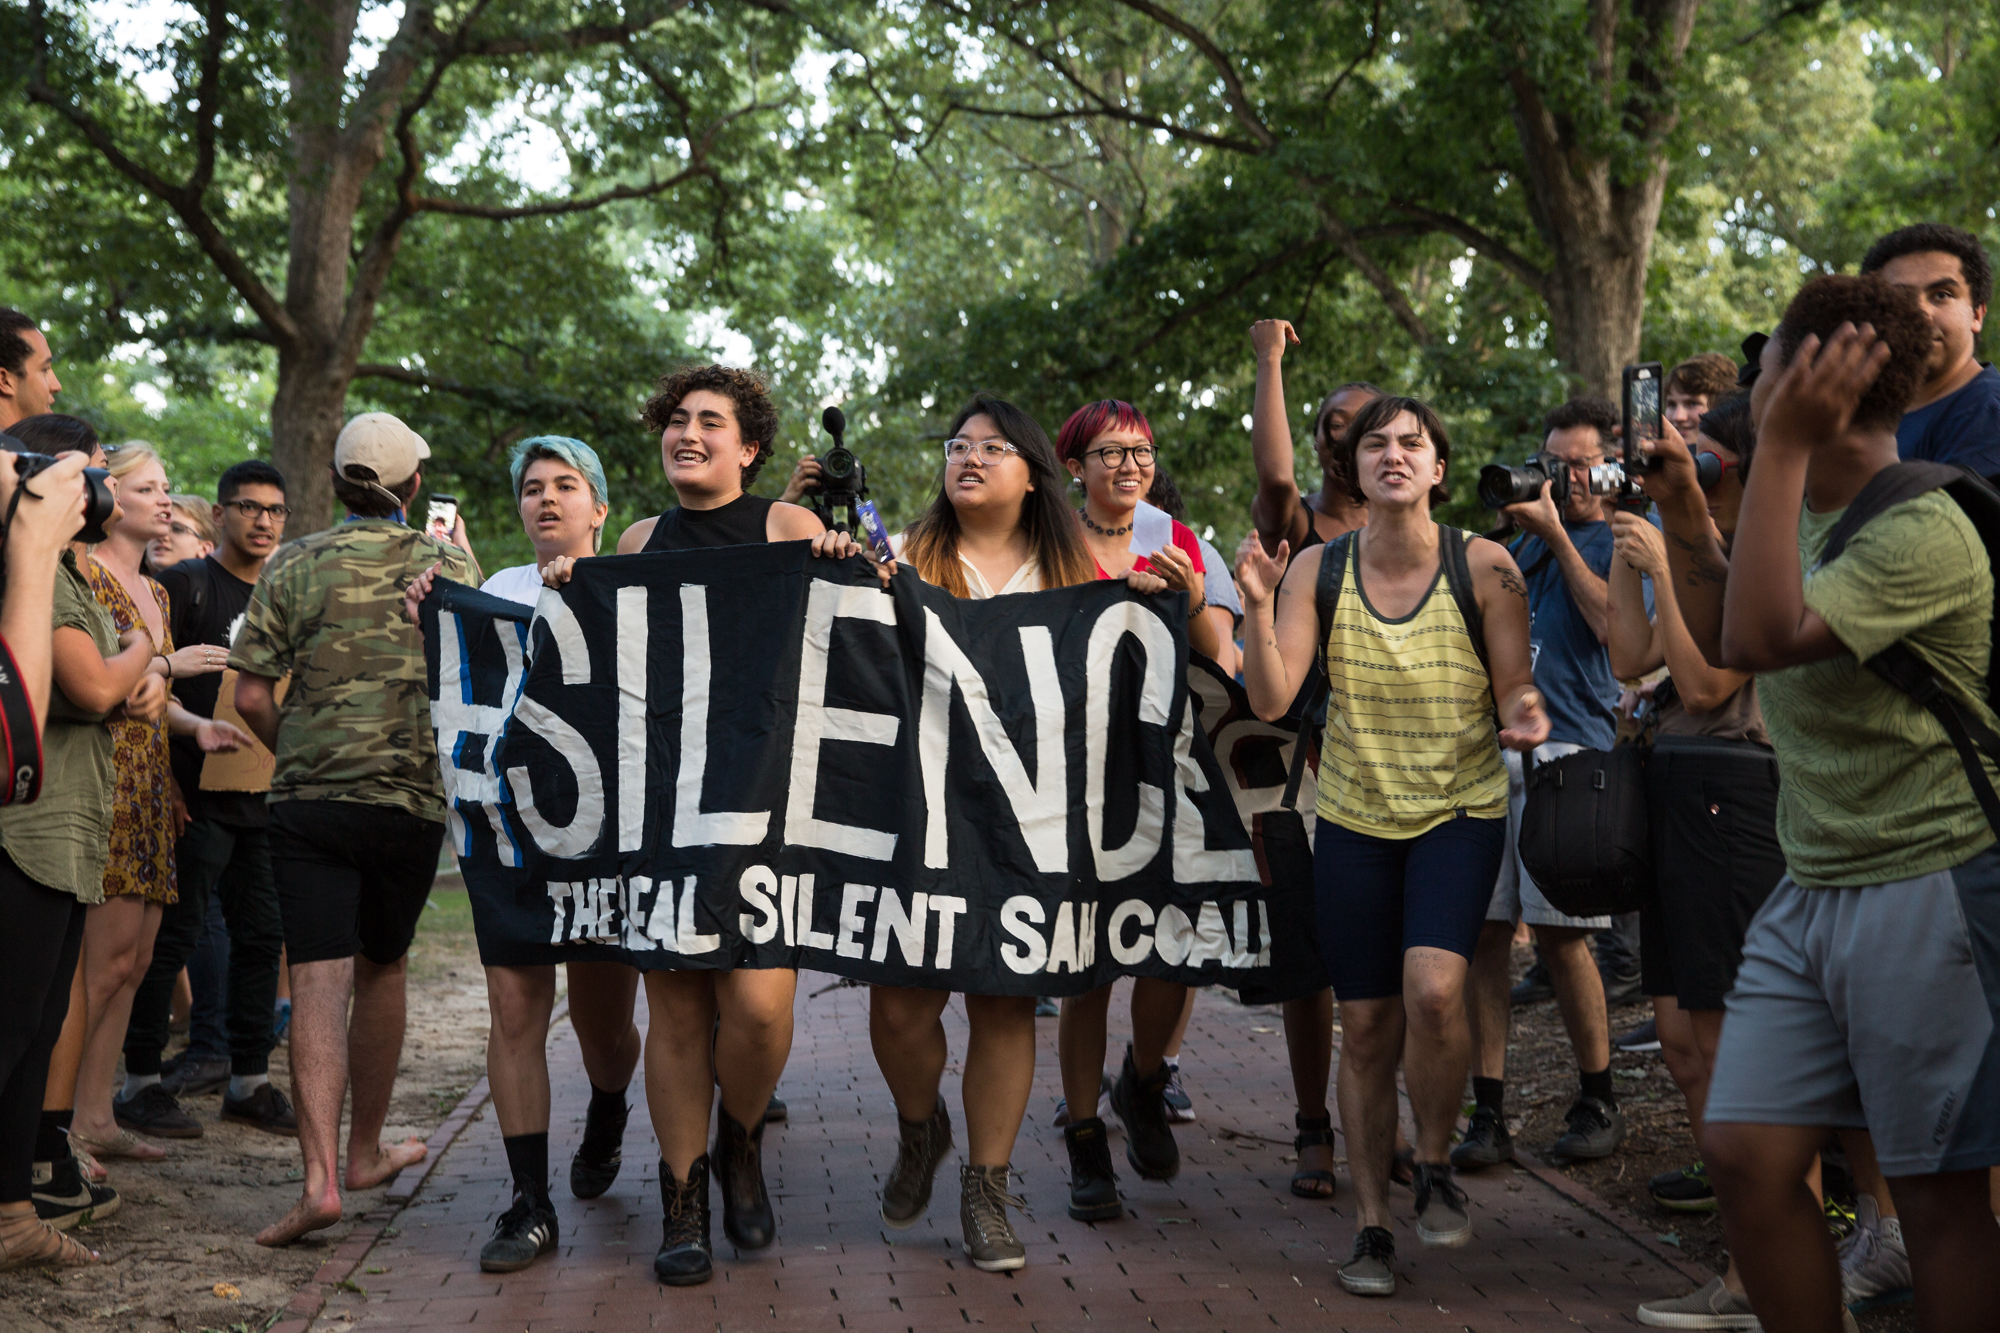 From left to right, Cosima Hernandez, Suad Jabr, Emily Yue and Mitch Xia carry a Real Silent Sam Coalition banner as they marched in protest against the statue at the University of North Carolina at Chapel Hill. Protestors for and against the statue's removal attended rallies near the monument on Tuesday, August 22, 2017.